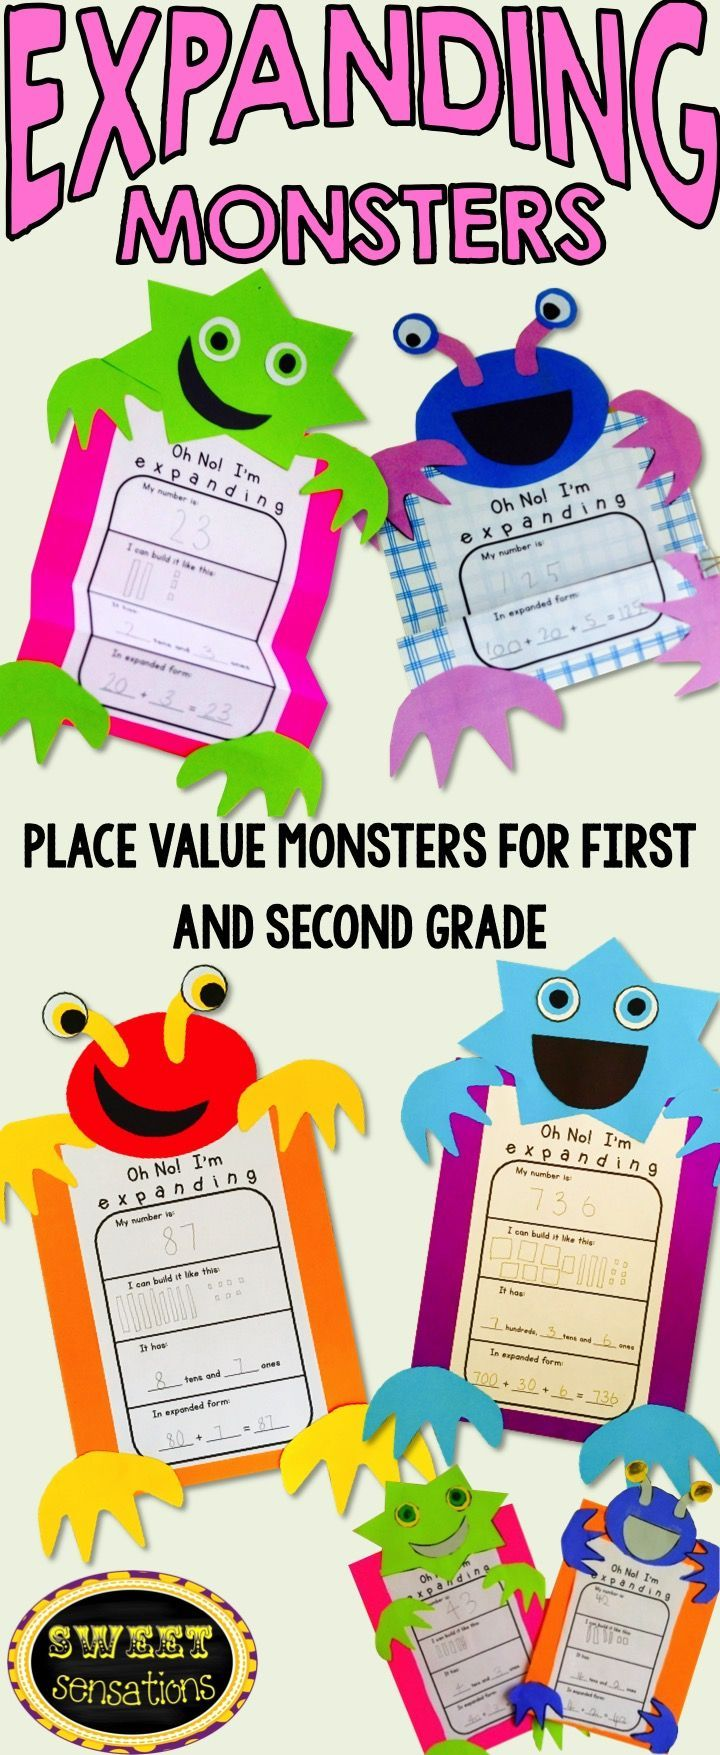 These monsters are the perfect way to demonstrate place value and expanded number form! Differentiated for two digit numbers for first grade and three digit numbers for second grade. Makes a great Halloween review craft activity!